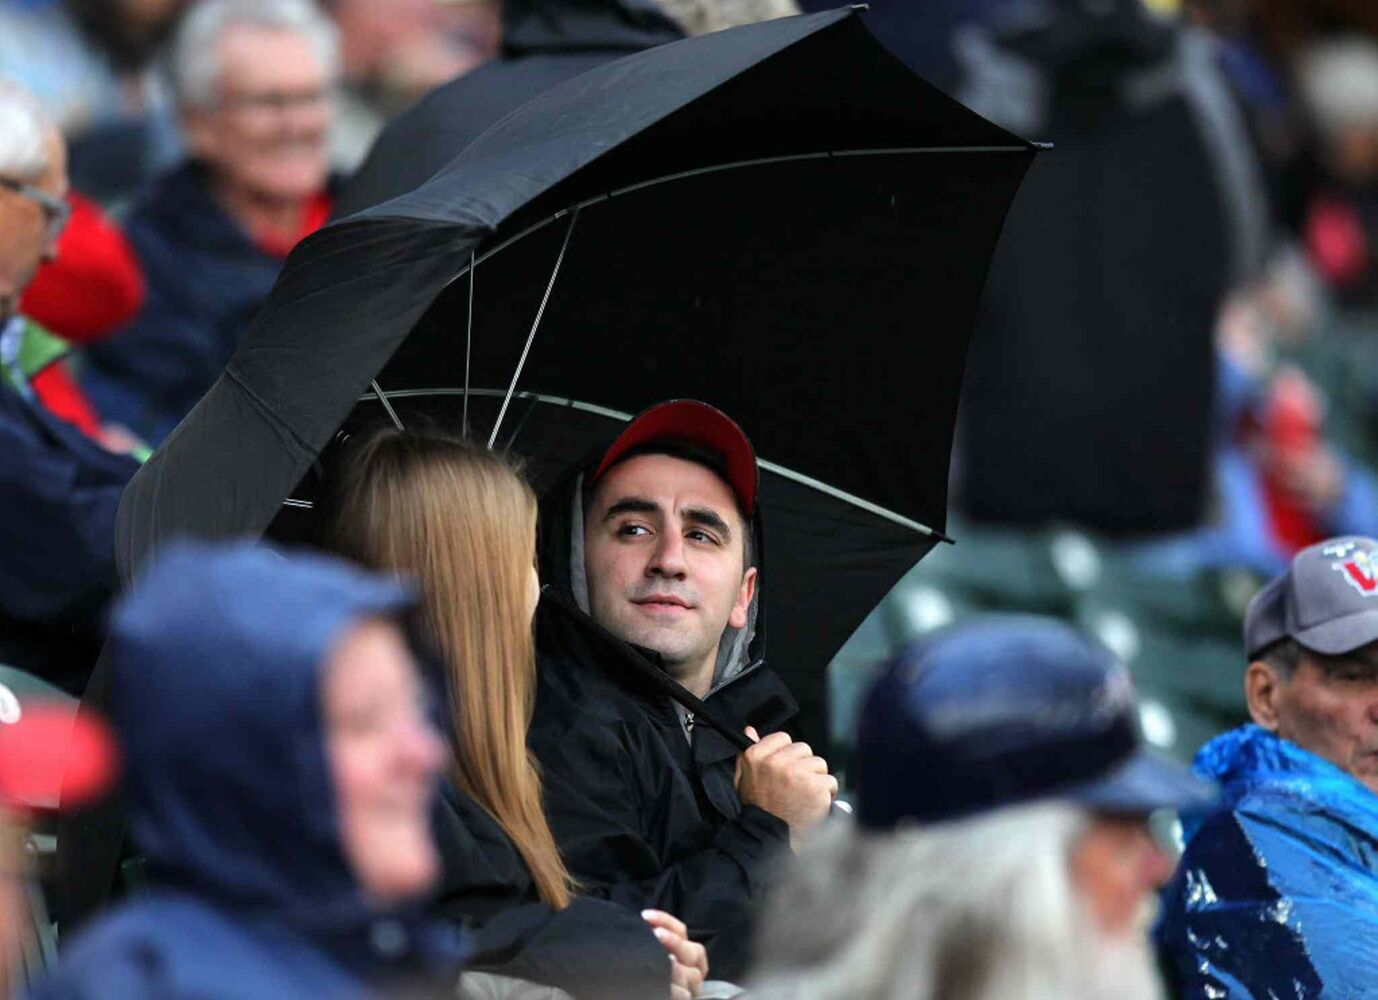 A few fans sheltered under umbrellas at Shaw Park Wednesday evening but short showers didn't dampen the enthusiasm as the Goldeyes and Saltdogs opened up the playoff season. (Phil Hossack / Winnipeg Free Press)